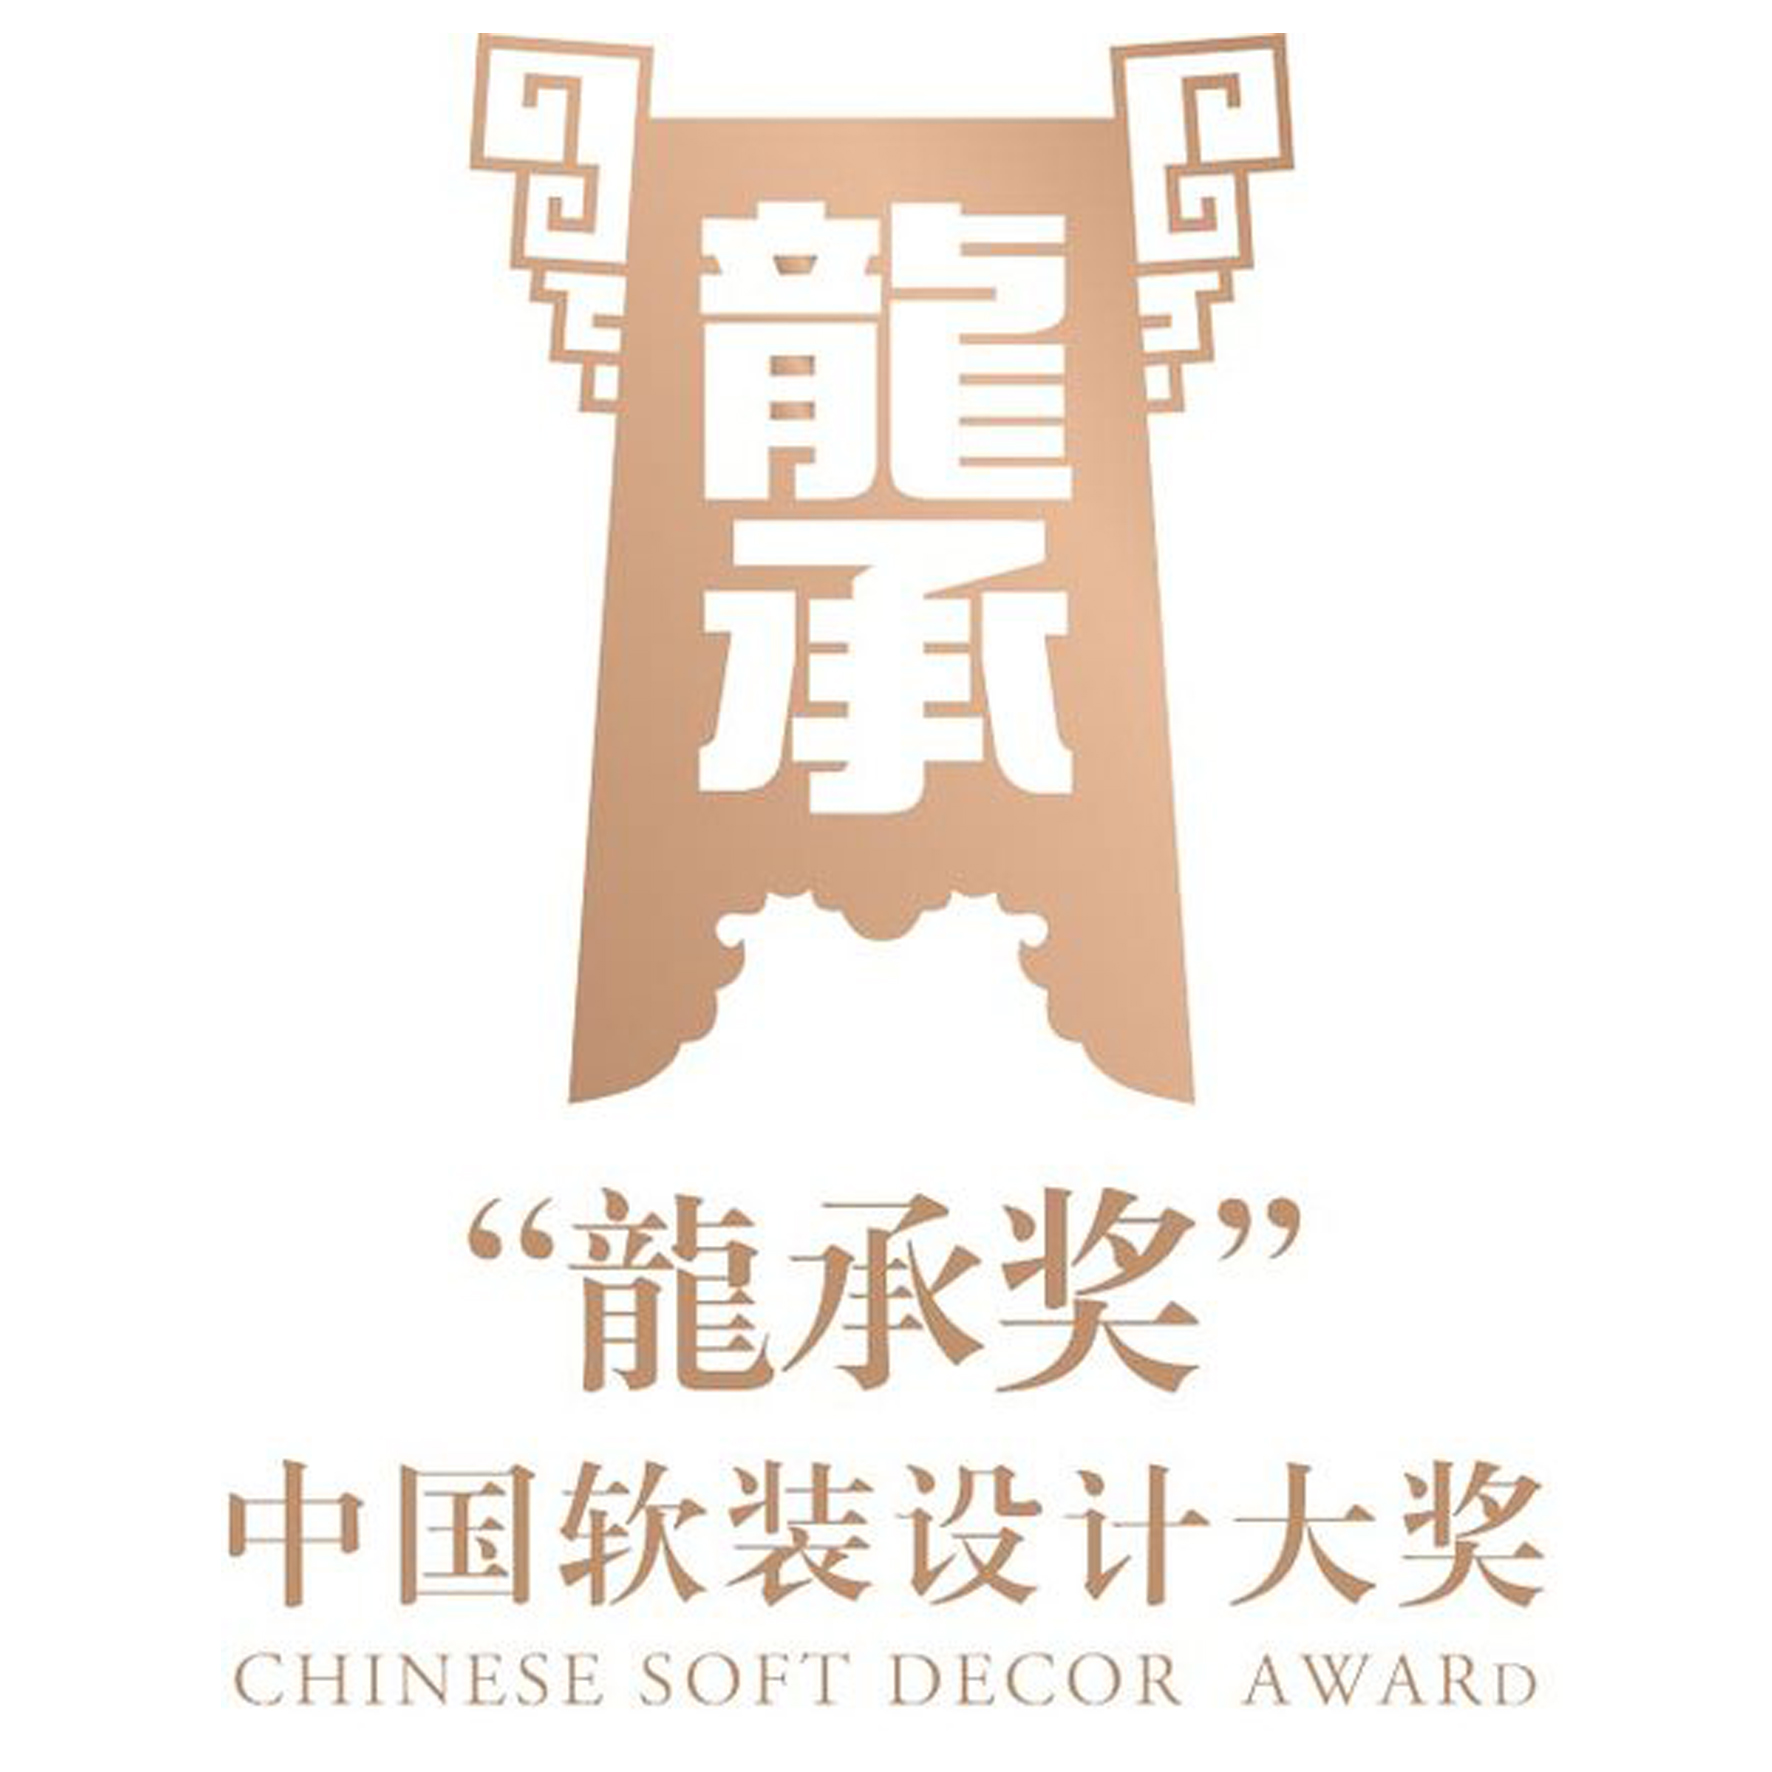 Chinese Soft Decor Award - 2018 Space Furnishings Excellence Award